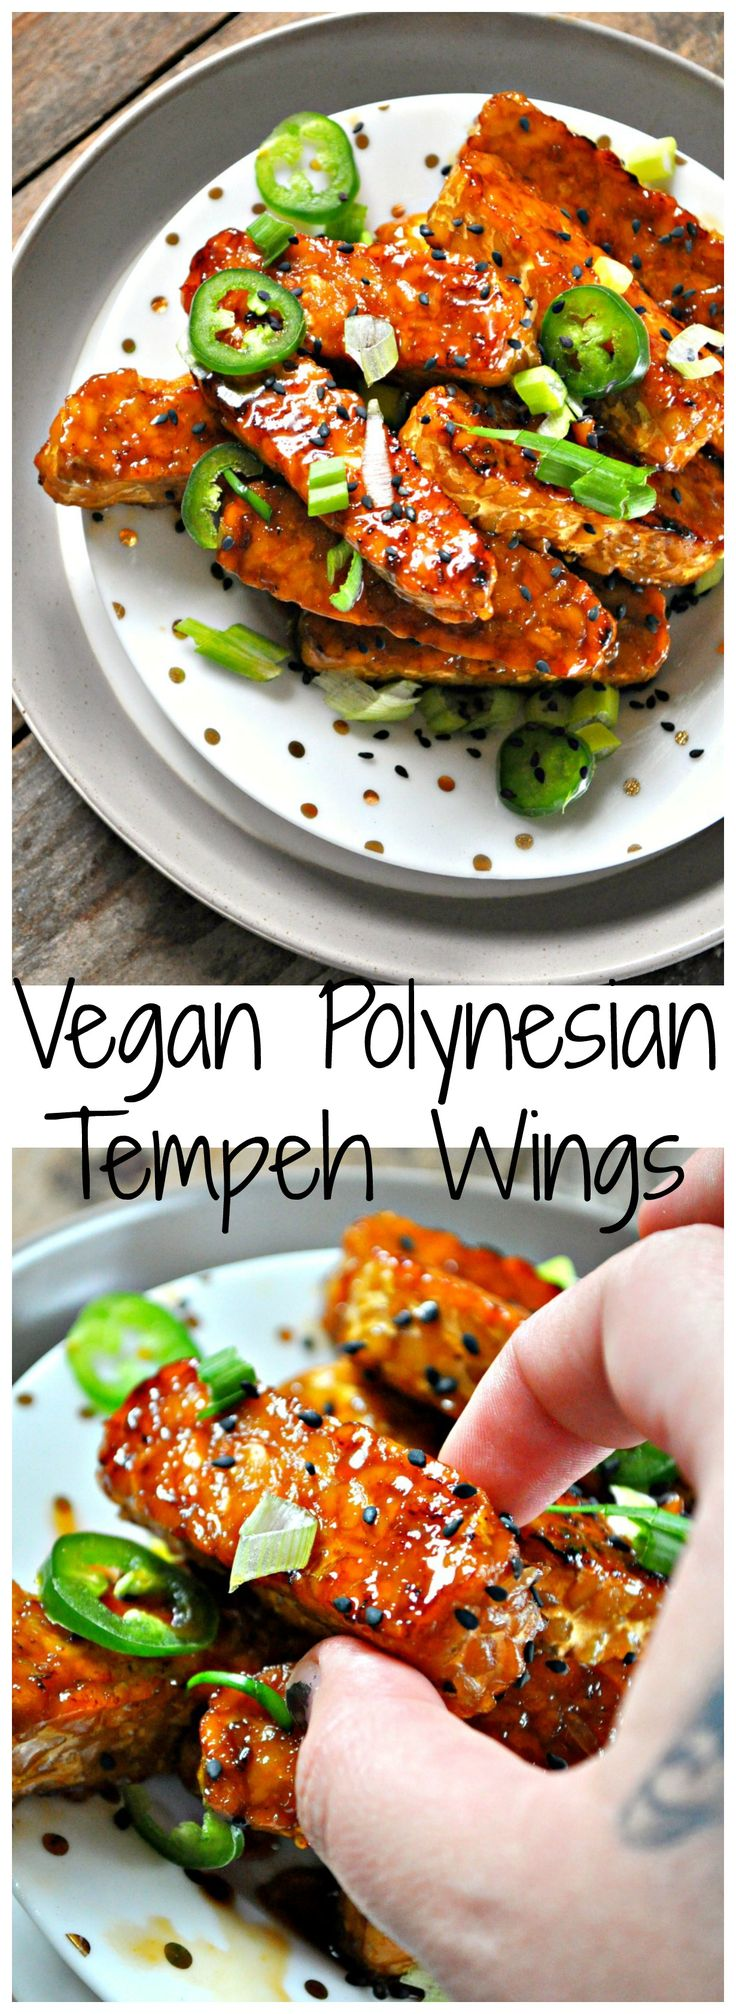 Healthy(ish) baked tempeh wings, tossed in a insanely delicious Polynesian sauce made with pineapple juice and soy sauce!